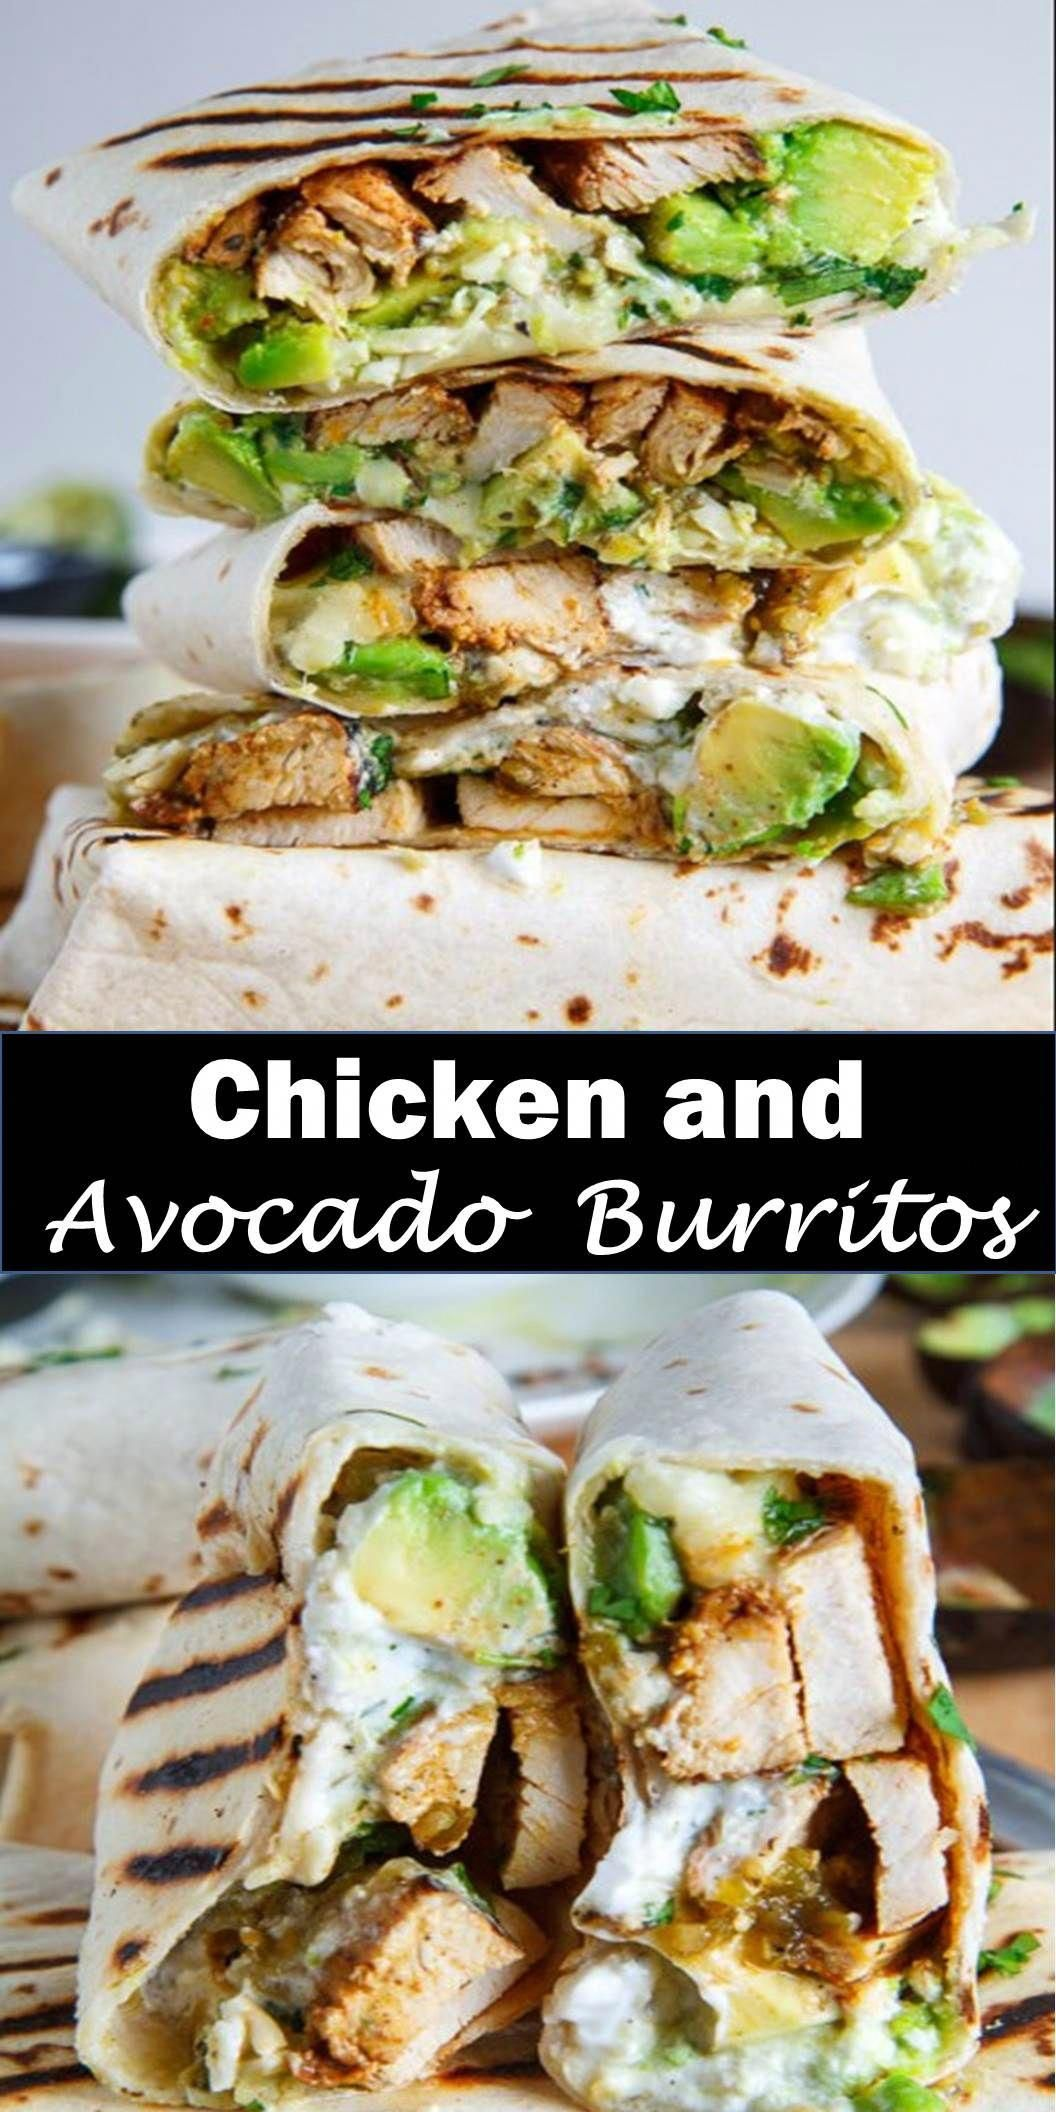 Delicious and healthy family choice special food and drink Chicken and Avocado Burritos Burritos st